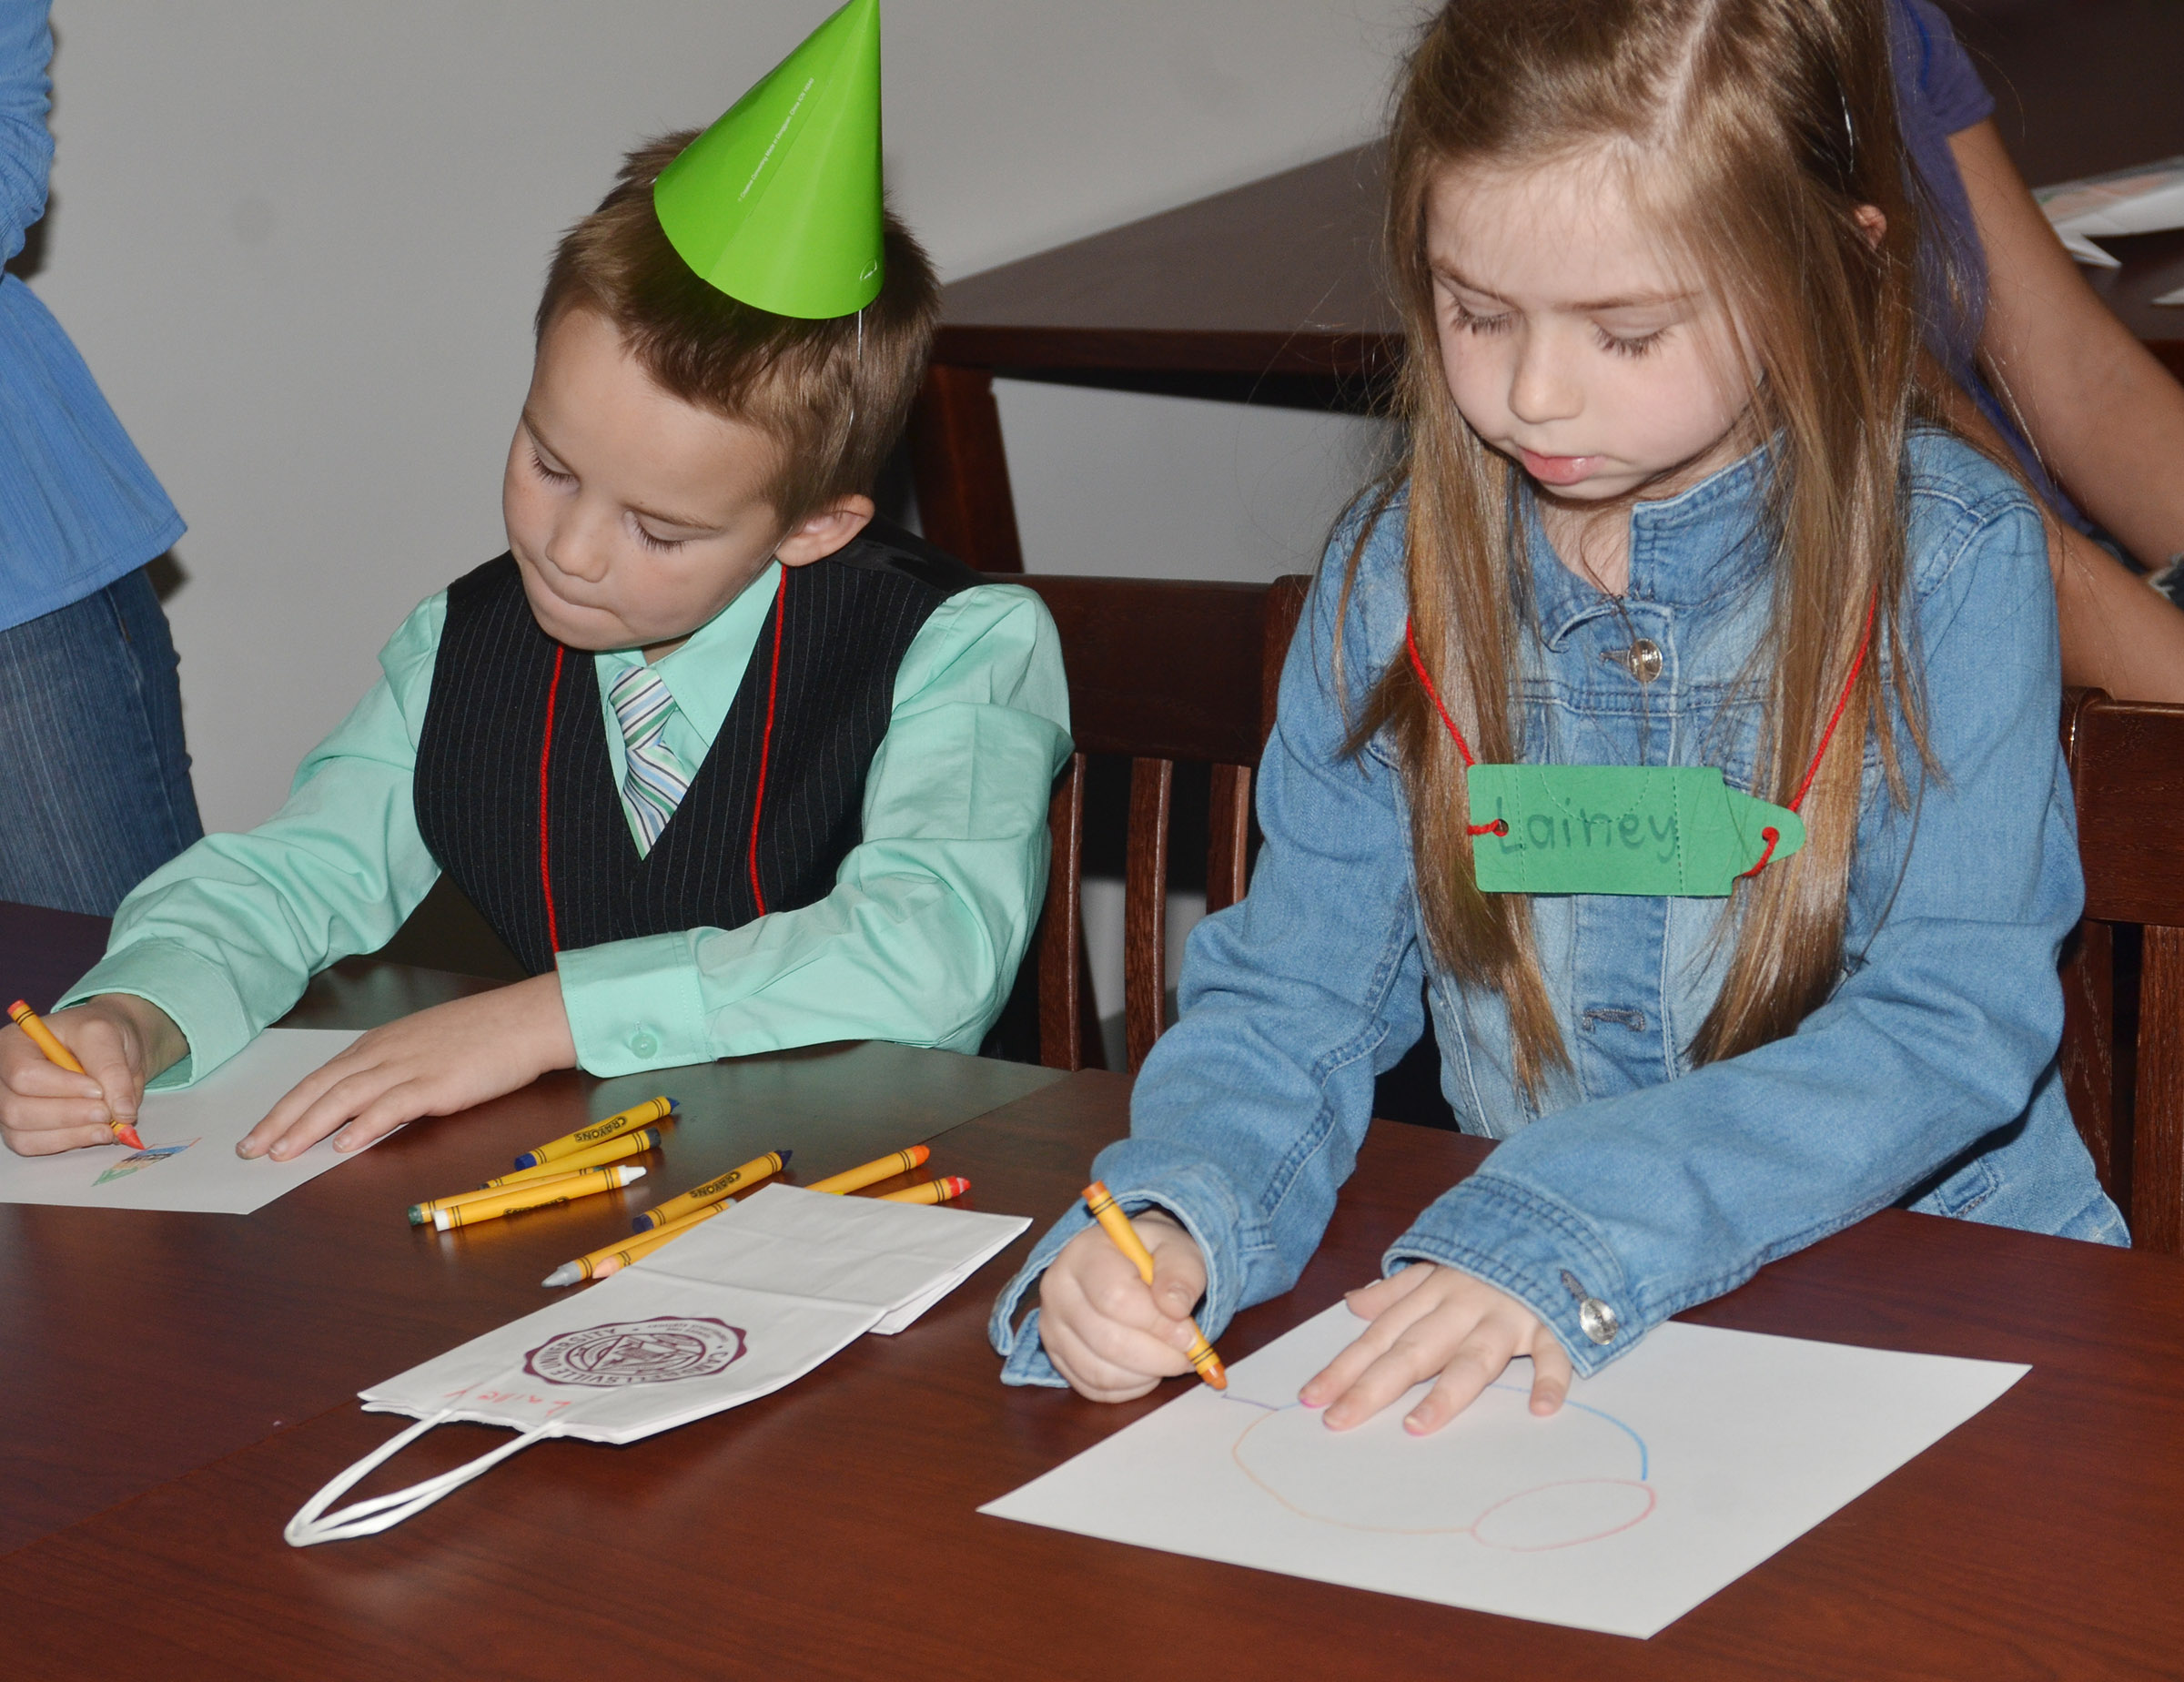 CES first-graders Jackson Bates, at left, and Lainey Price color together.